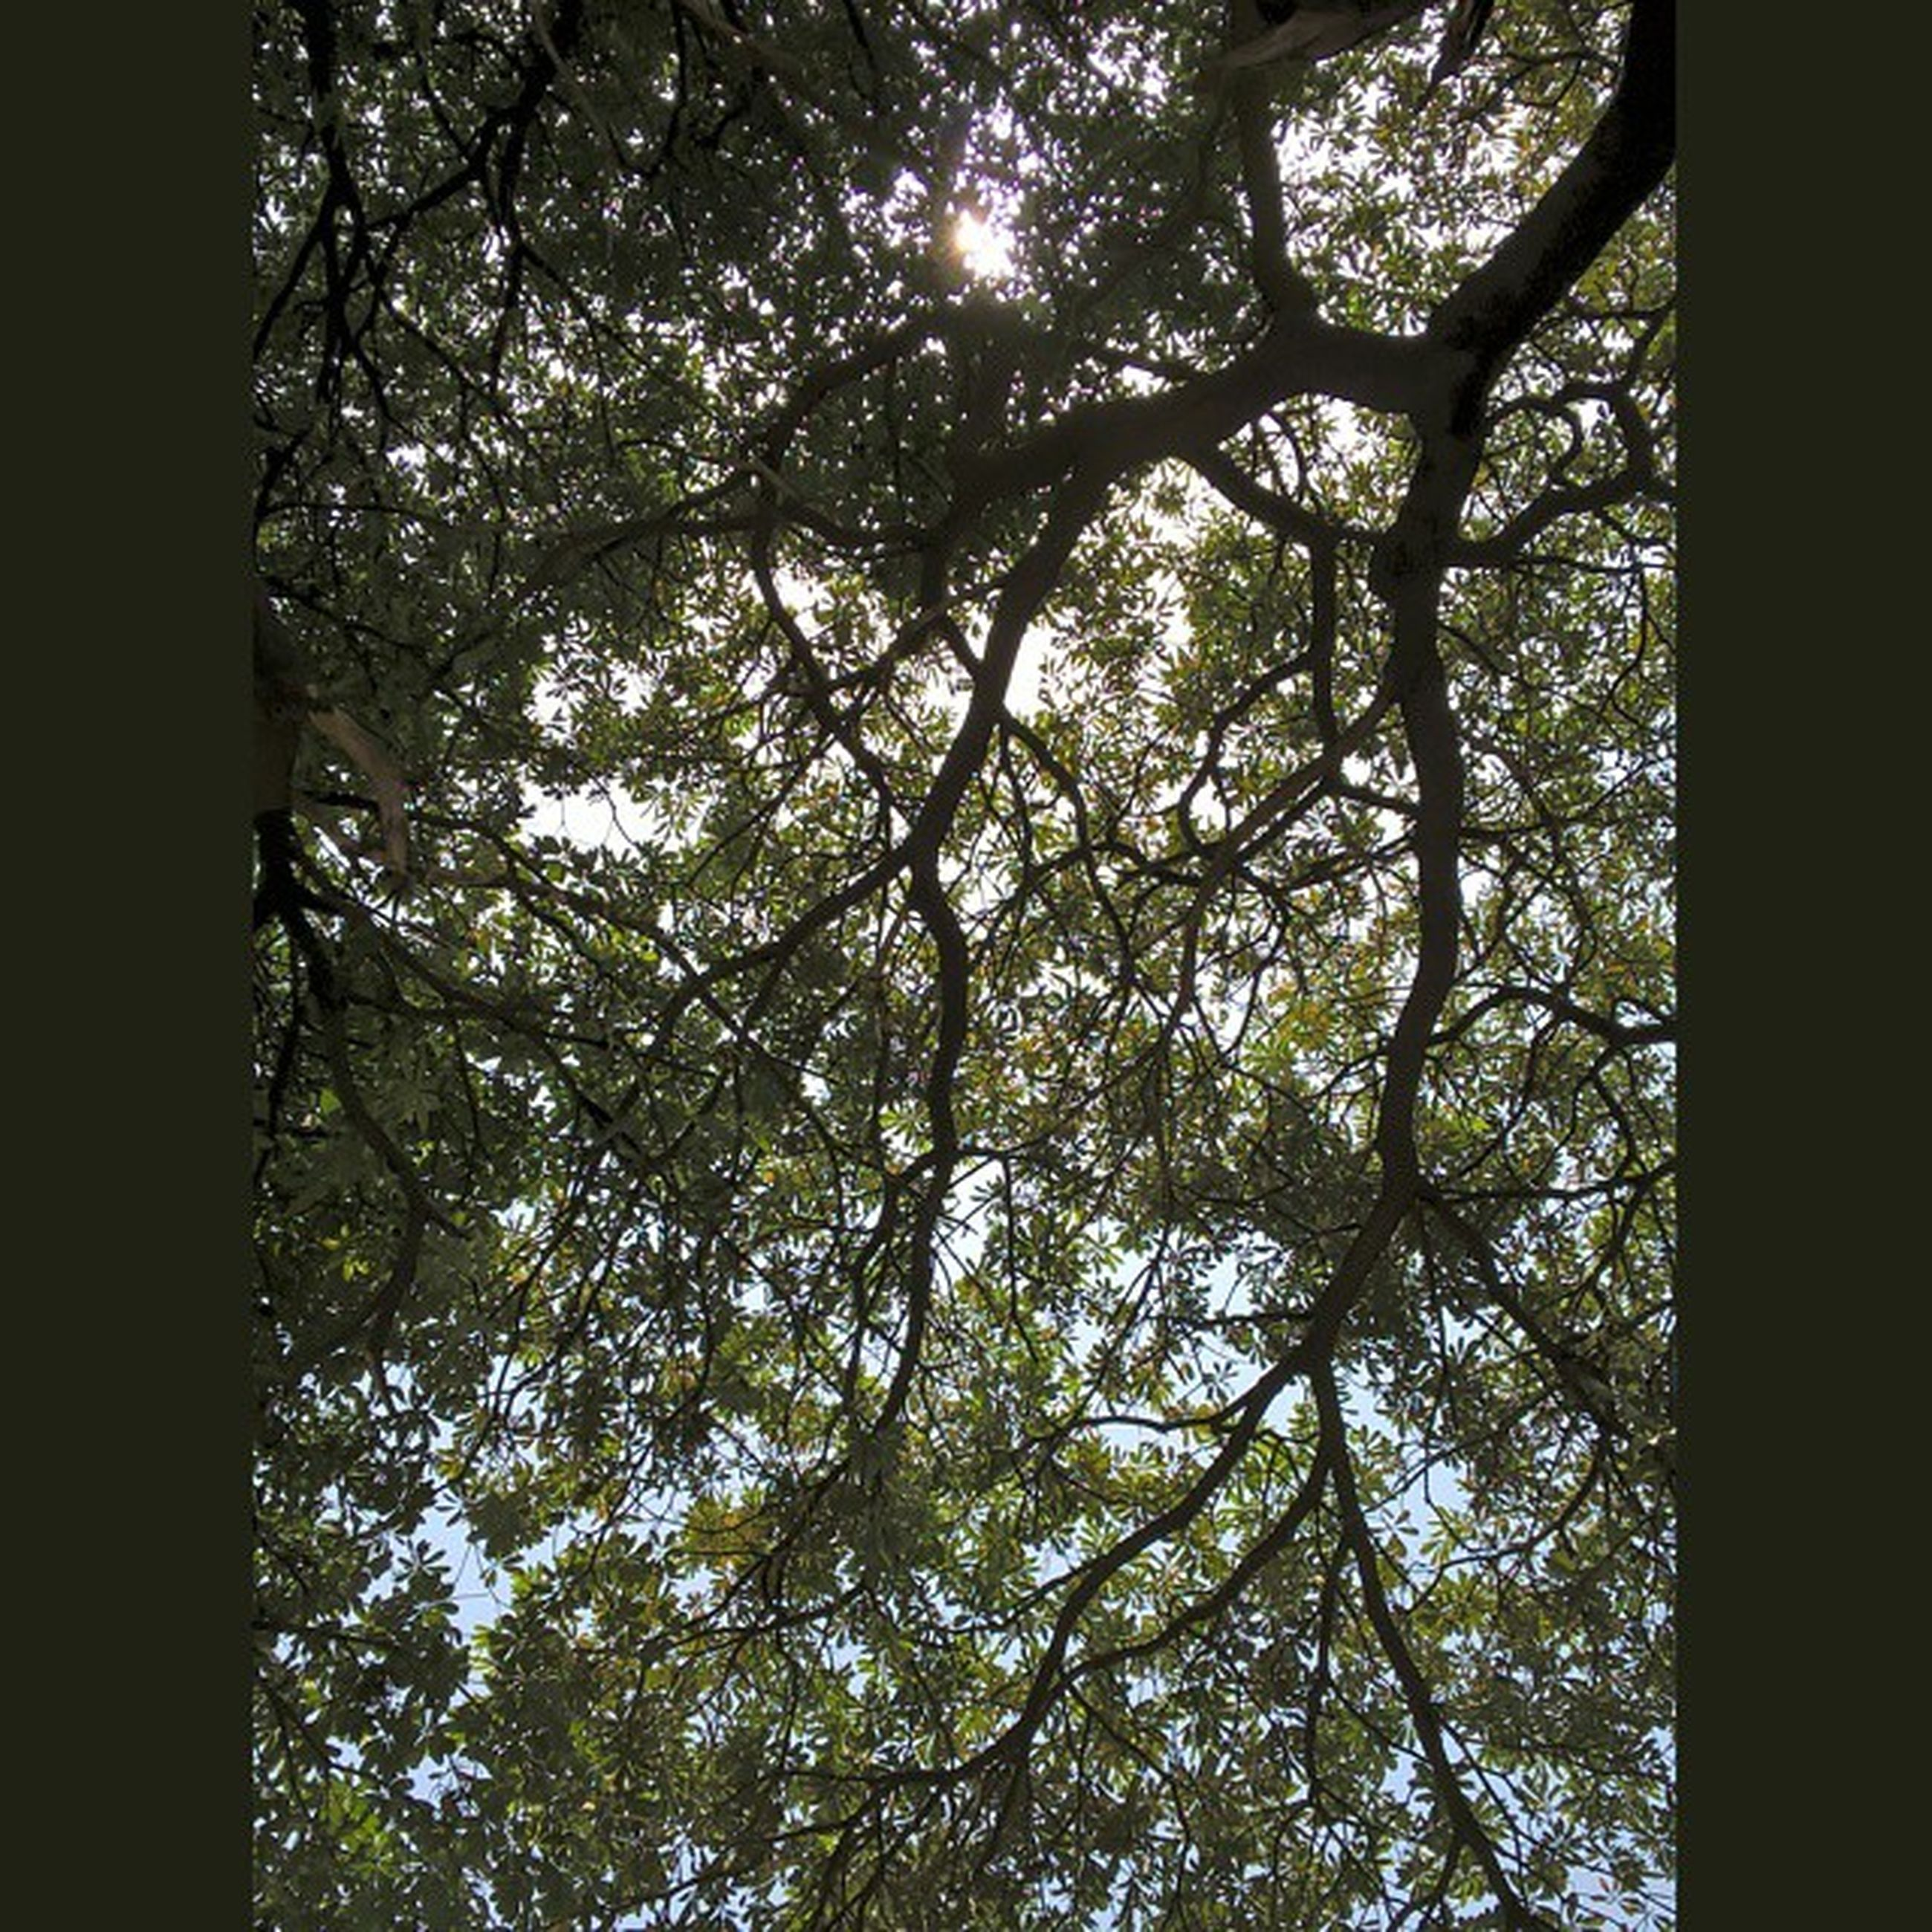 tree, branch, low angle view, tree trunk, growth, nature, tranquility, forest, beauty in nature, backgrounds, full frame, no people, day, sunlight, silhouette, outdoors, sky, scenics, auto post production filter, tranquil scene